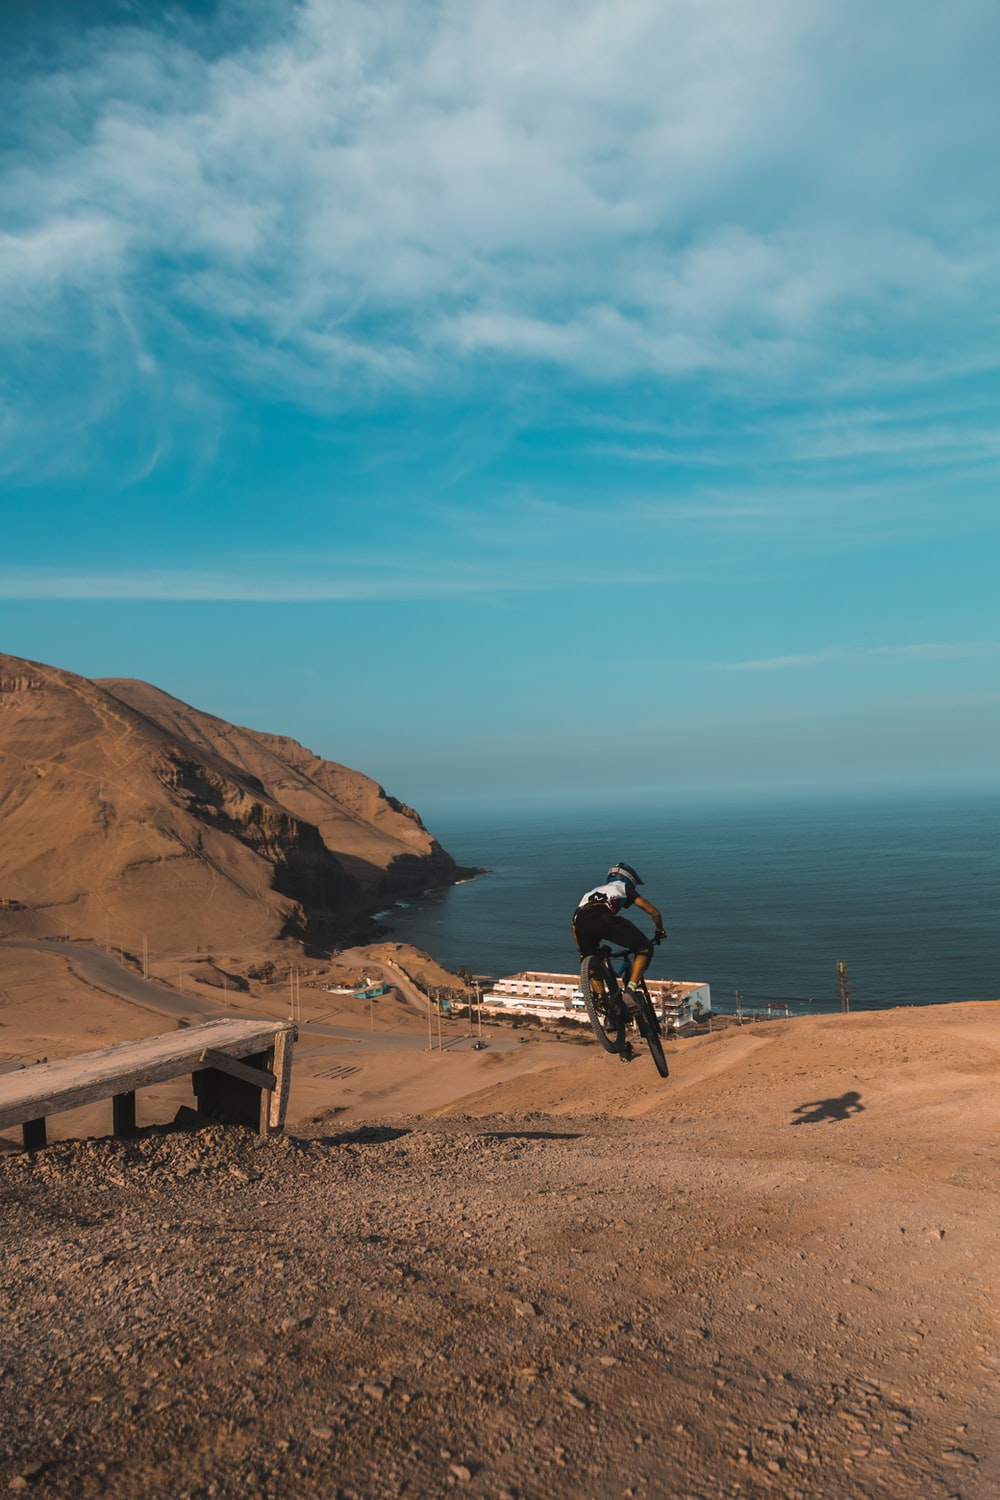 man in black shirt riding bicycle on brown sand near body of water during daytime